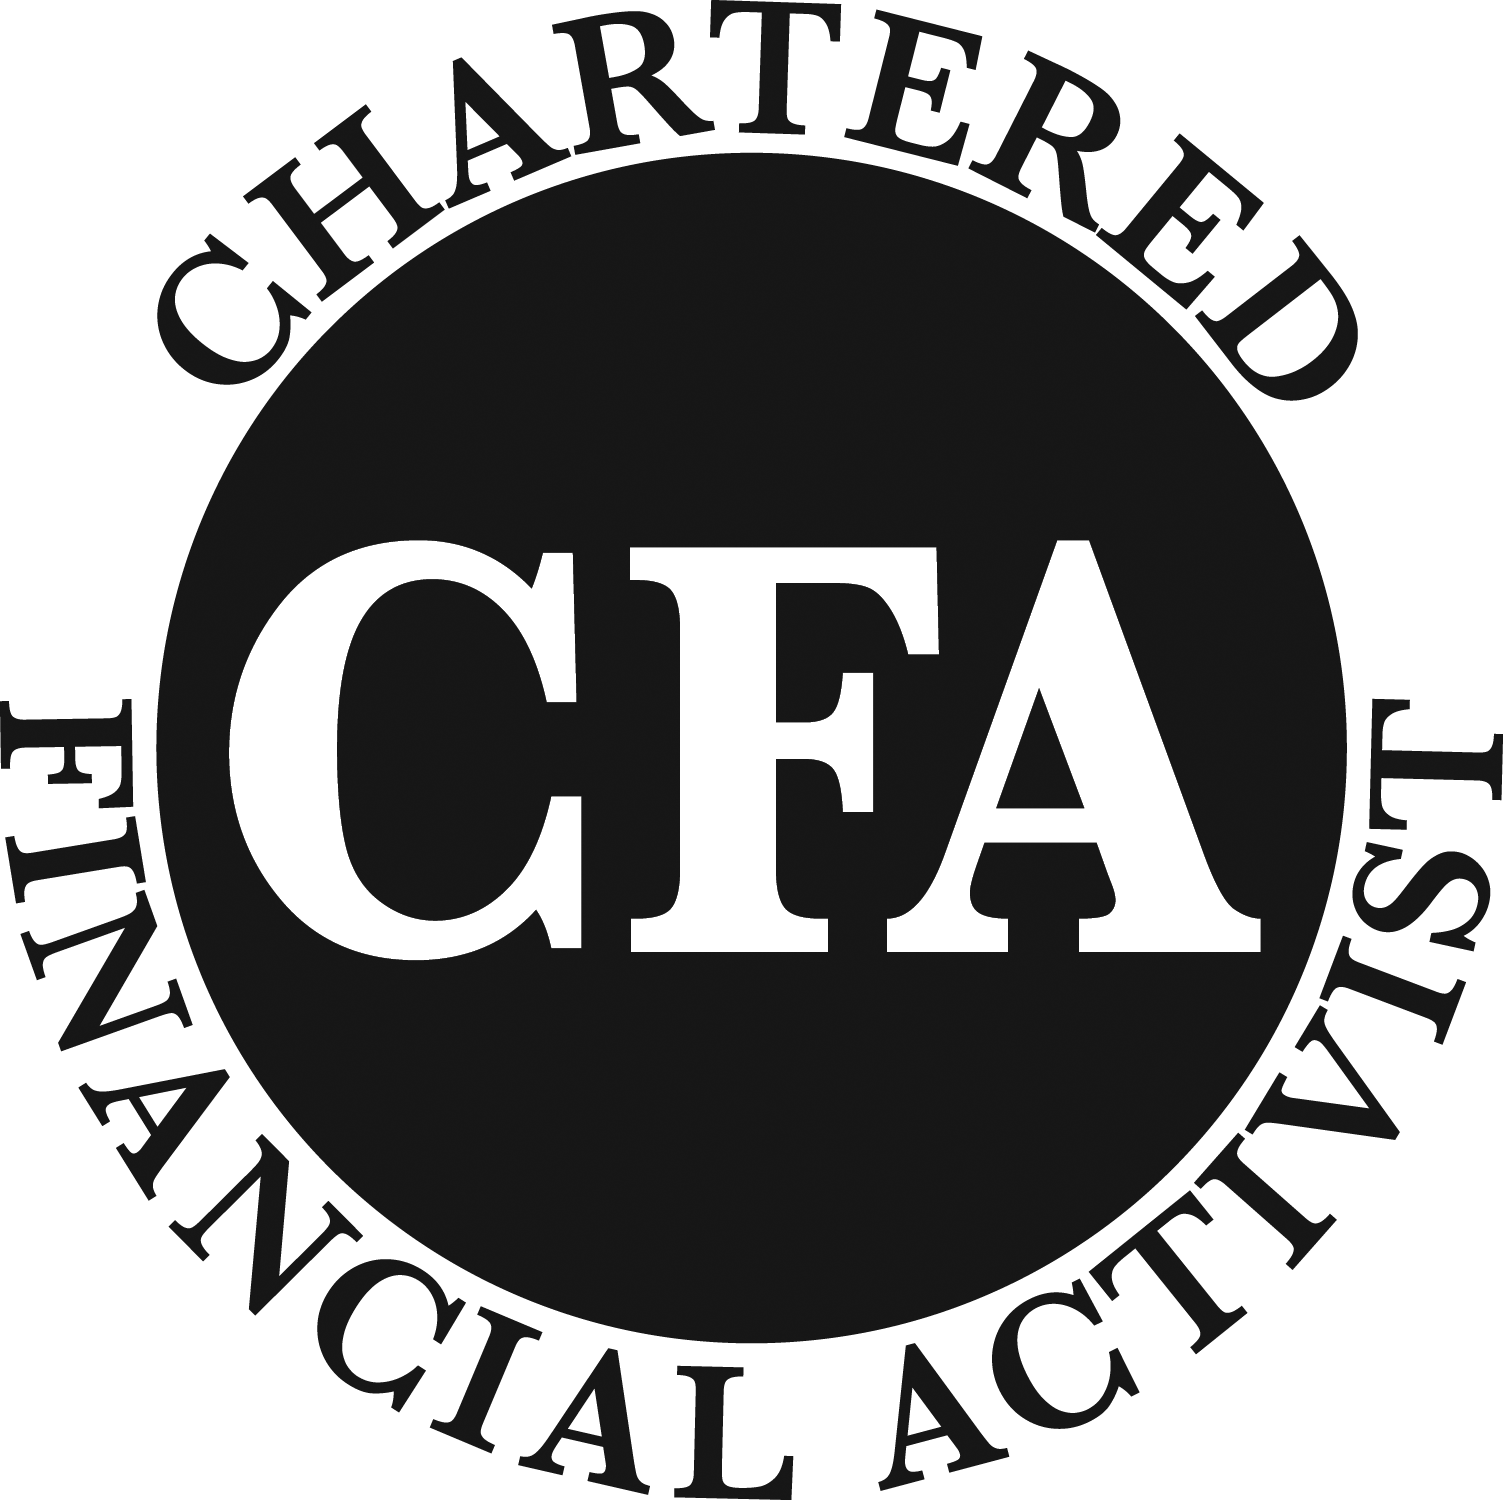 Chartered Financial Analyst Top Accounting Degrees